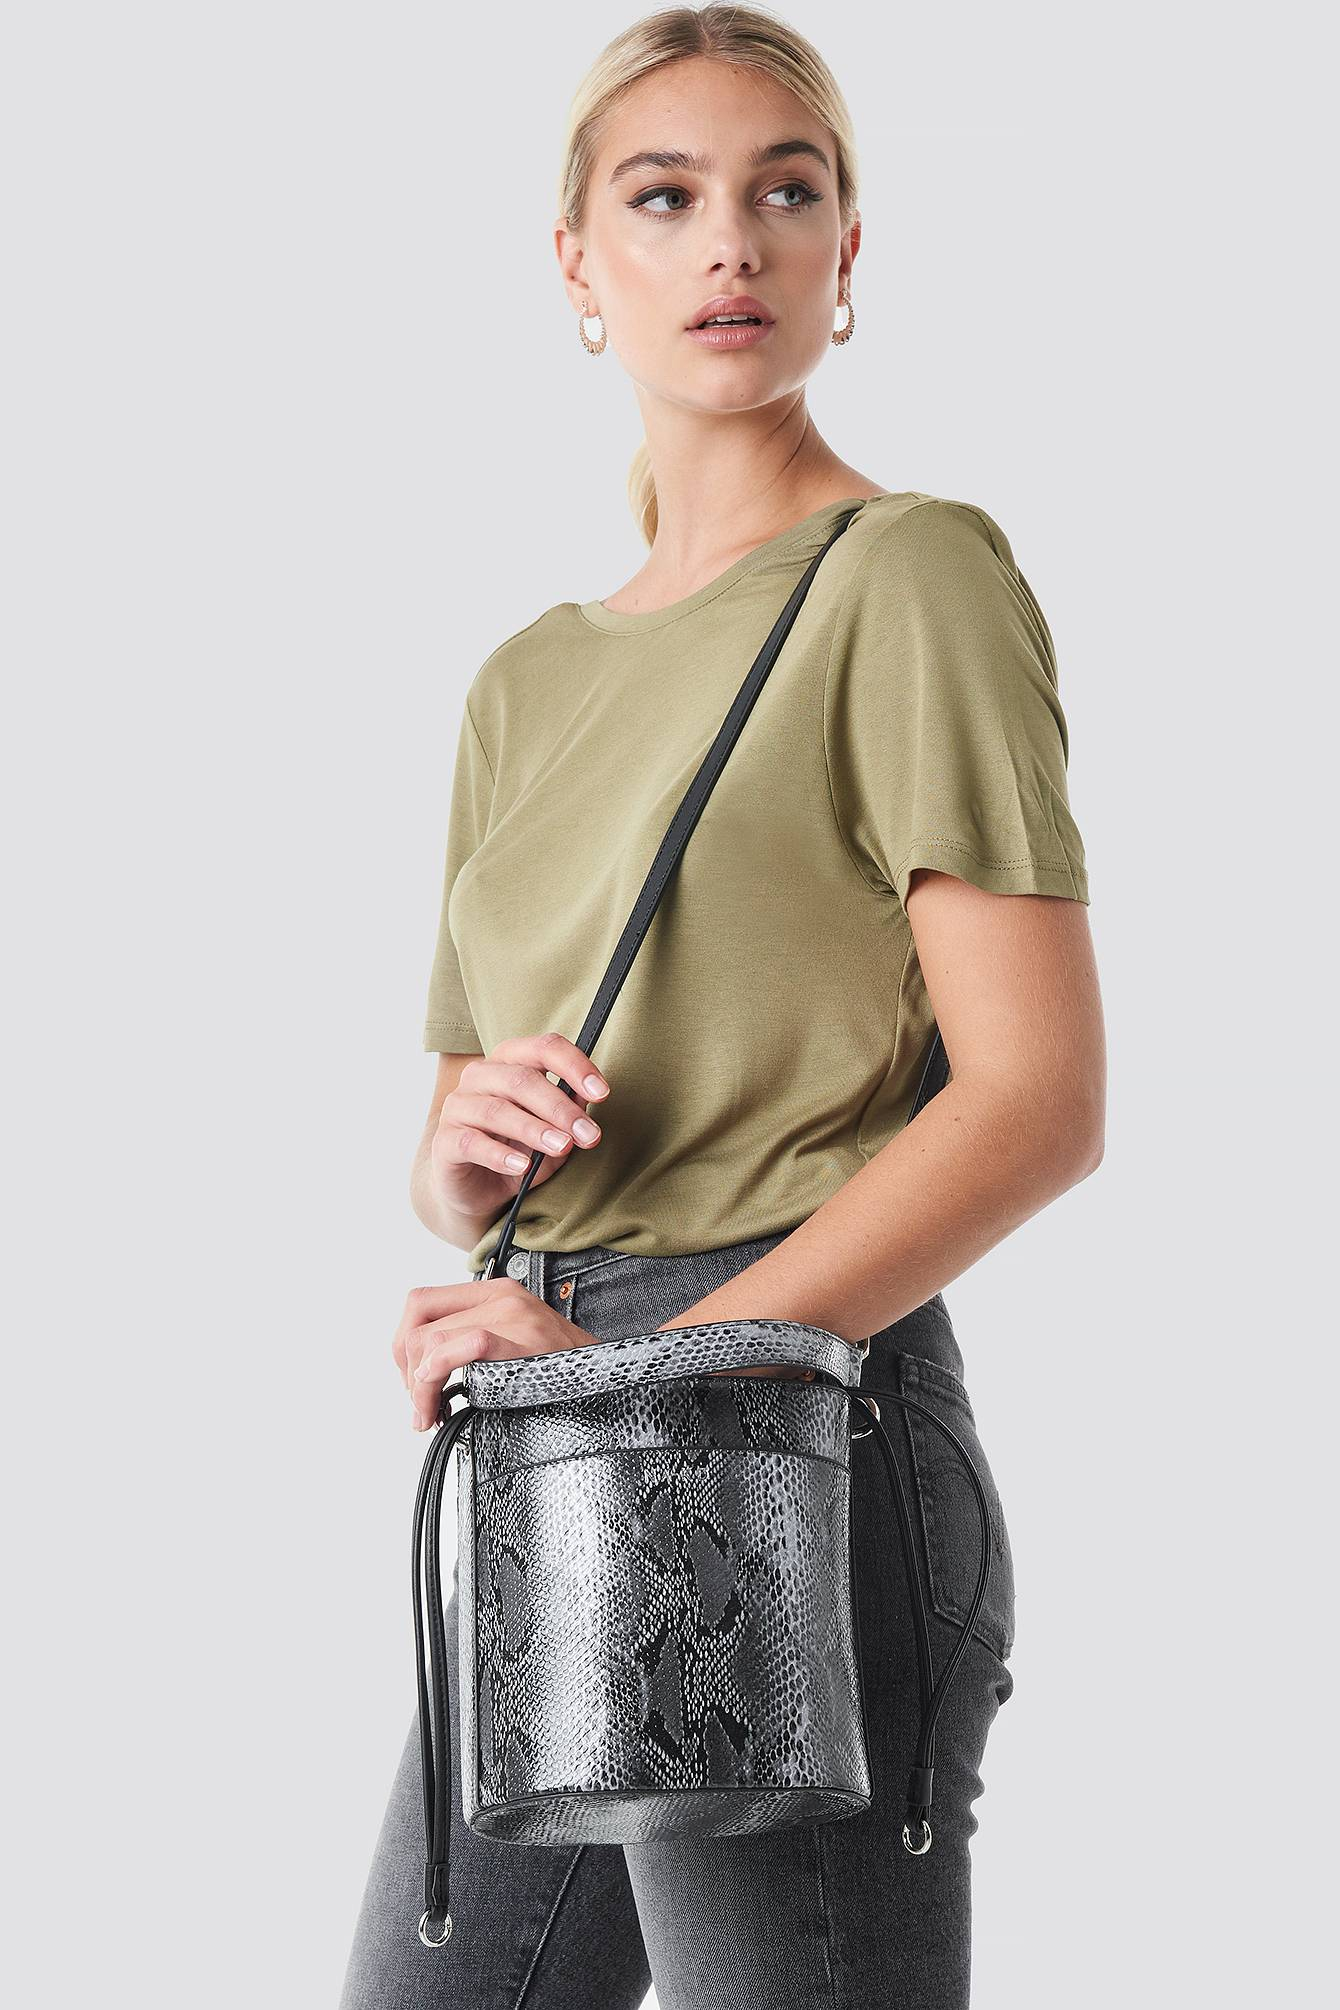 NA-KD Accessories Snake Bucket Bag - Grey  - Size: One Size